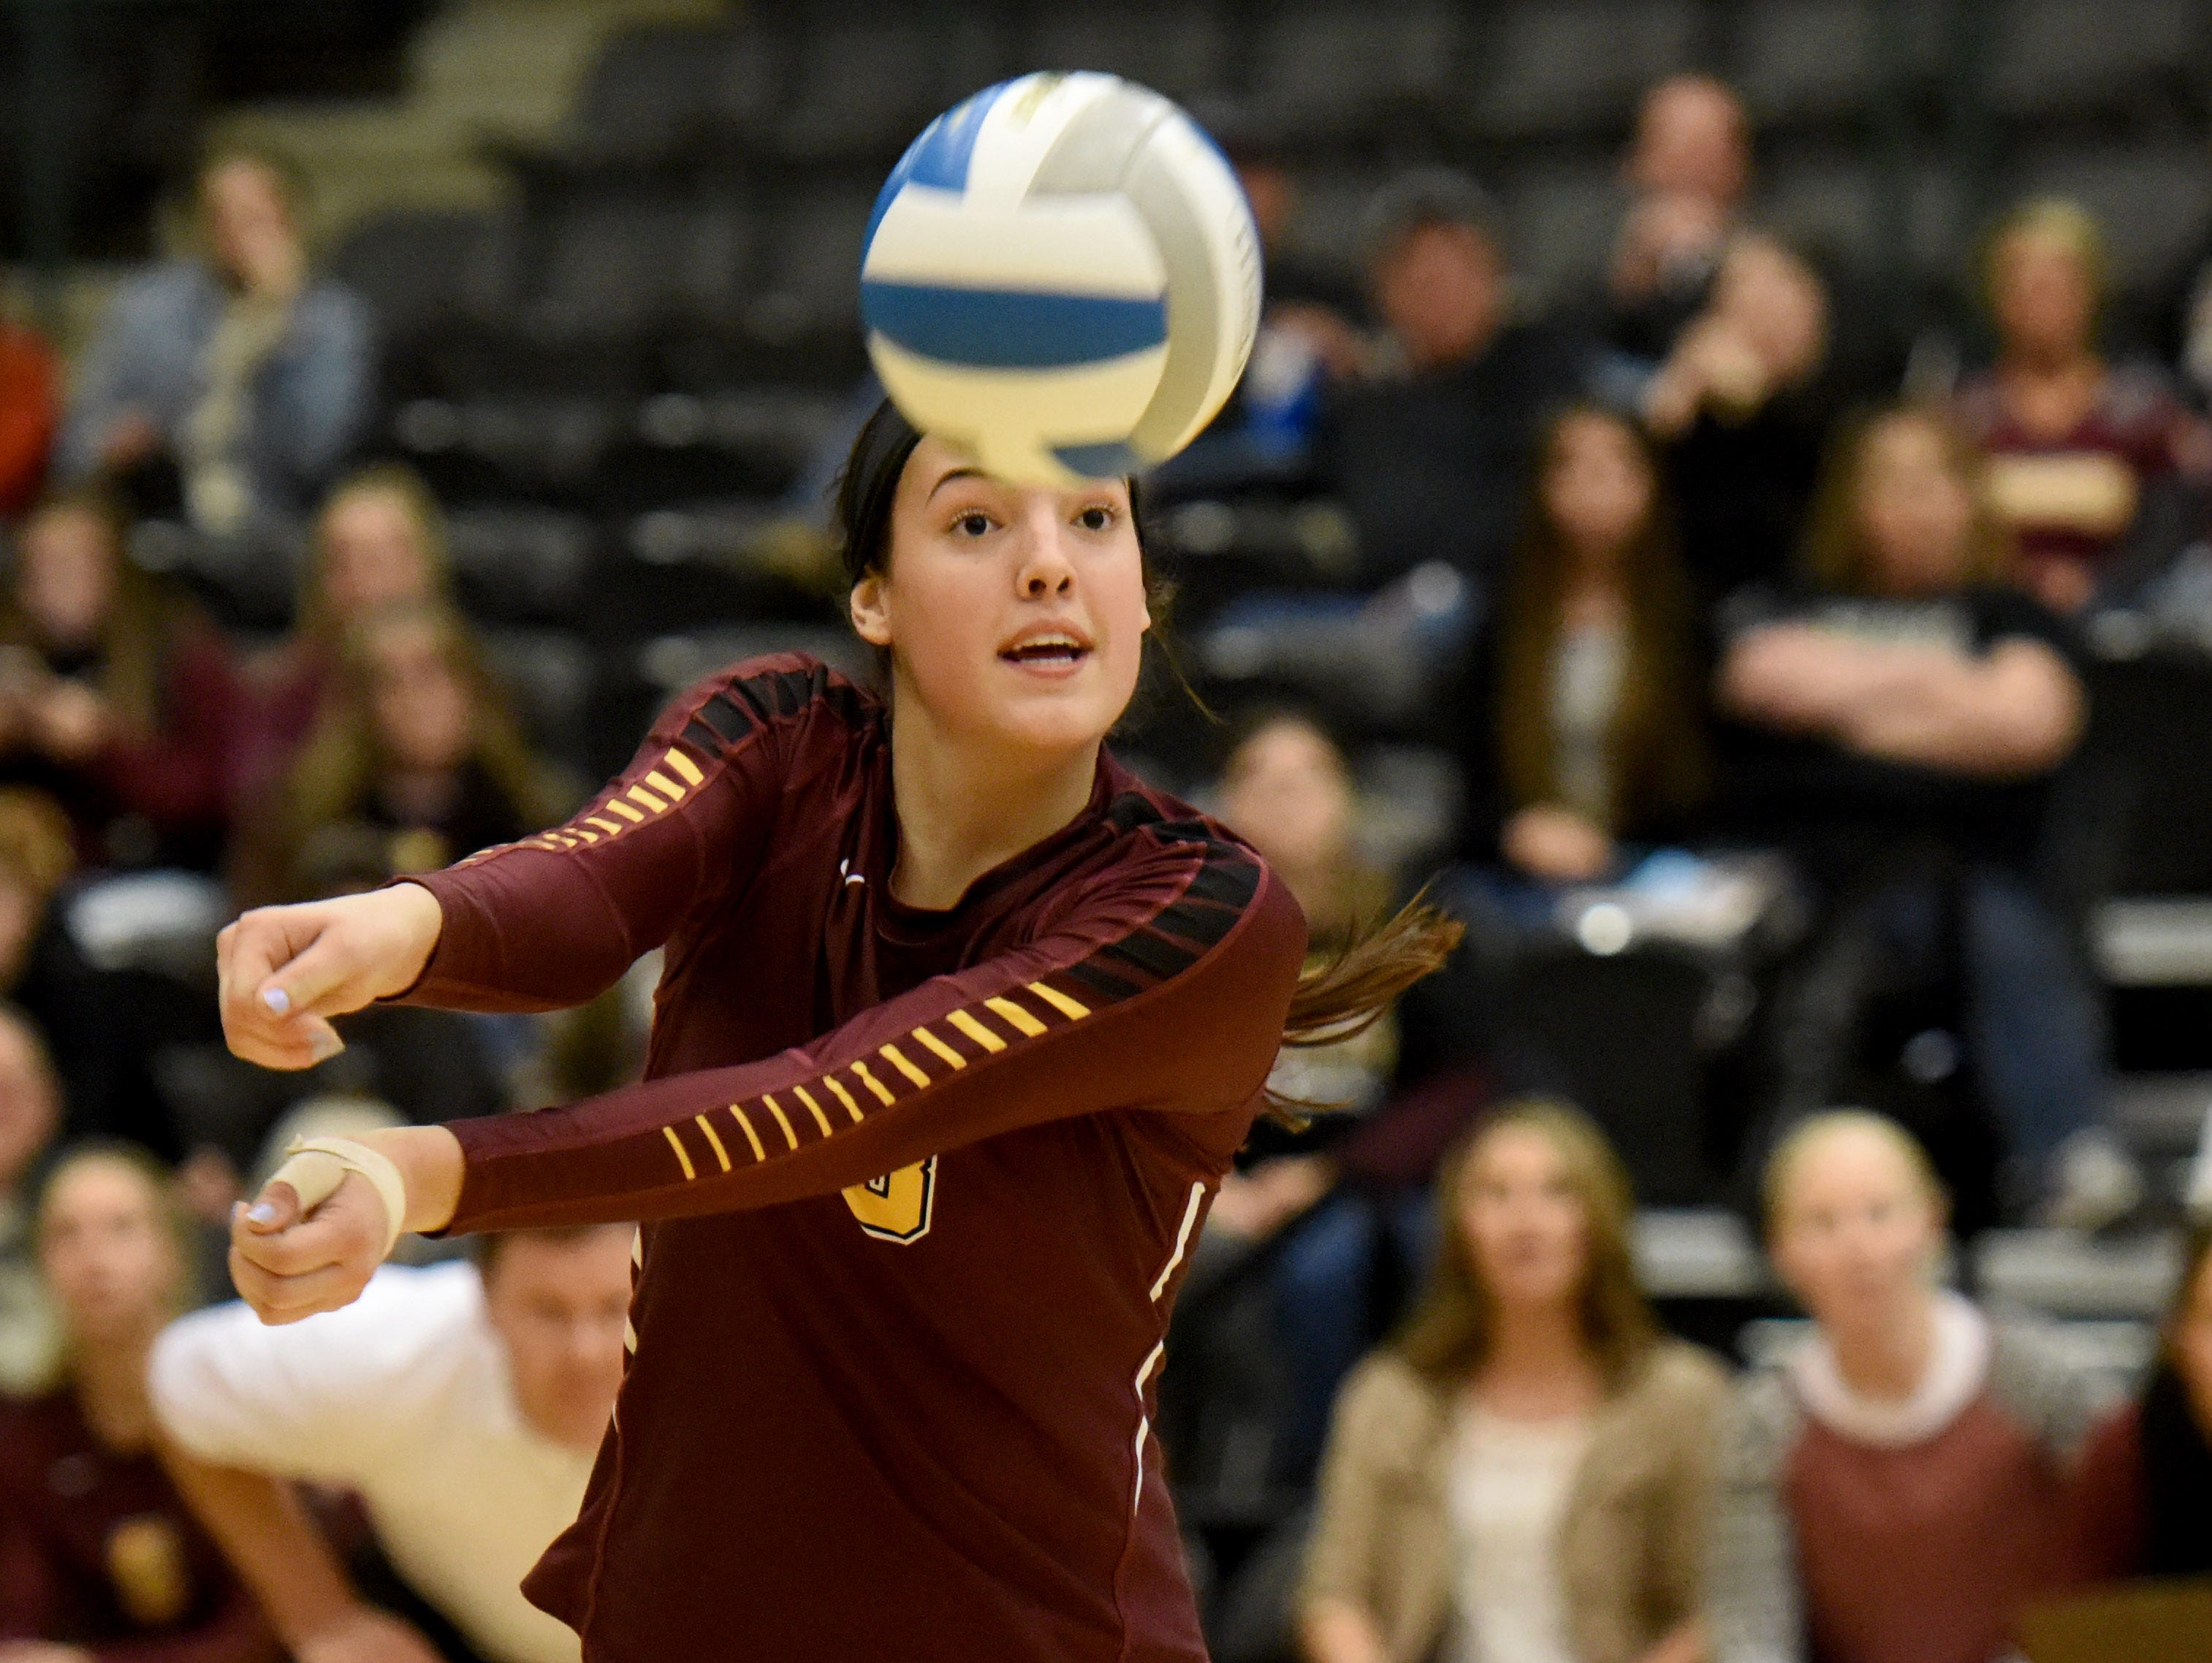 Harrisburg's Samantha Slaughter bumps the ball against Roosevelt during the S.D. State AA Volleyball championship at the Swiftel Center in Brookings.